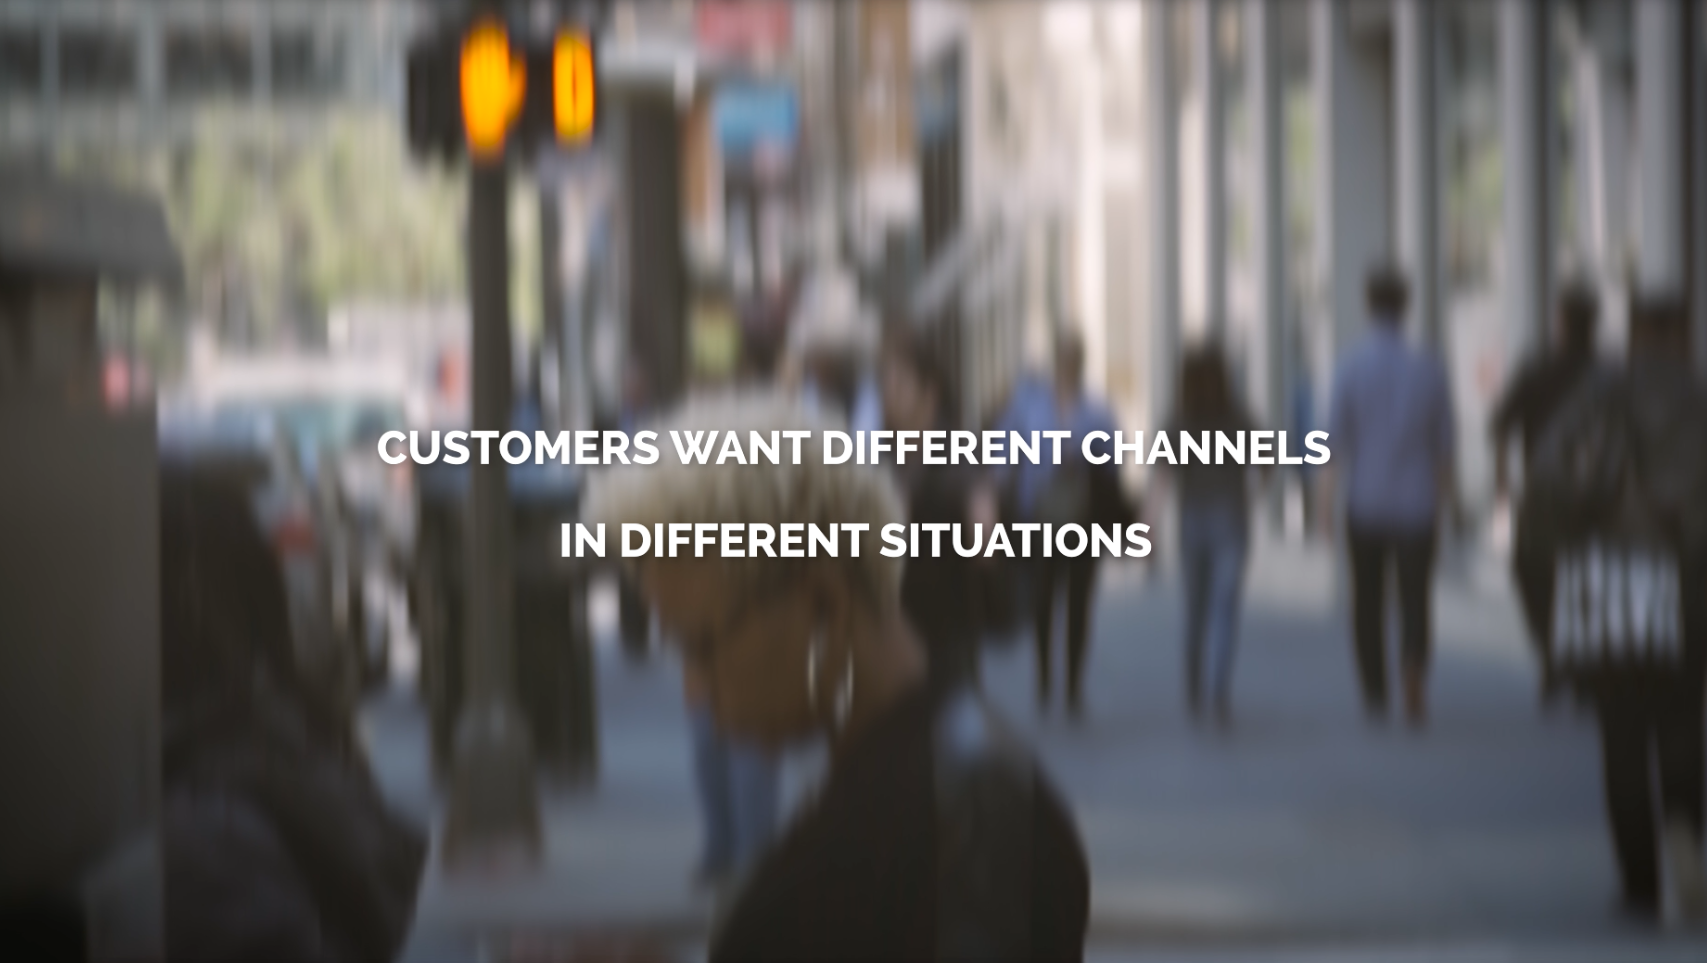 Customer Channel Preferences